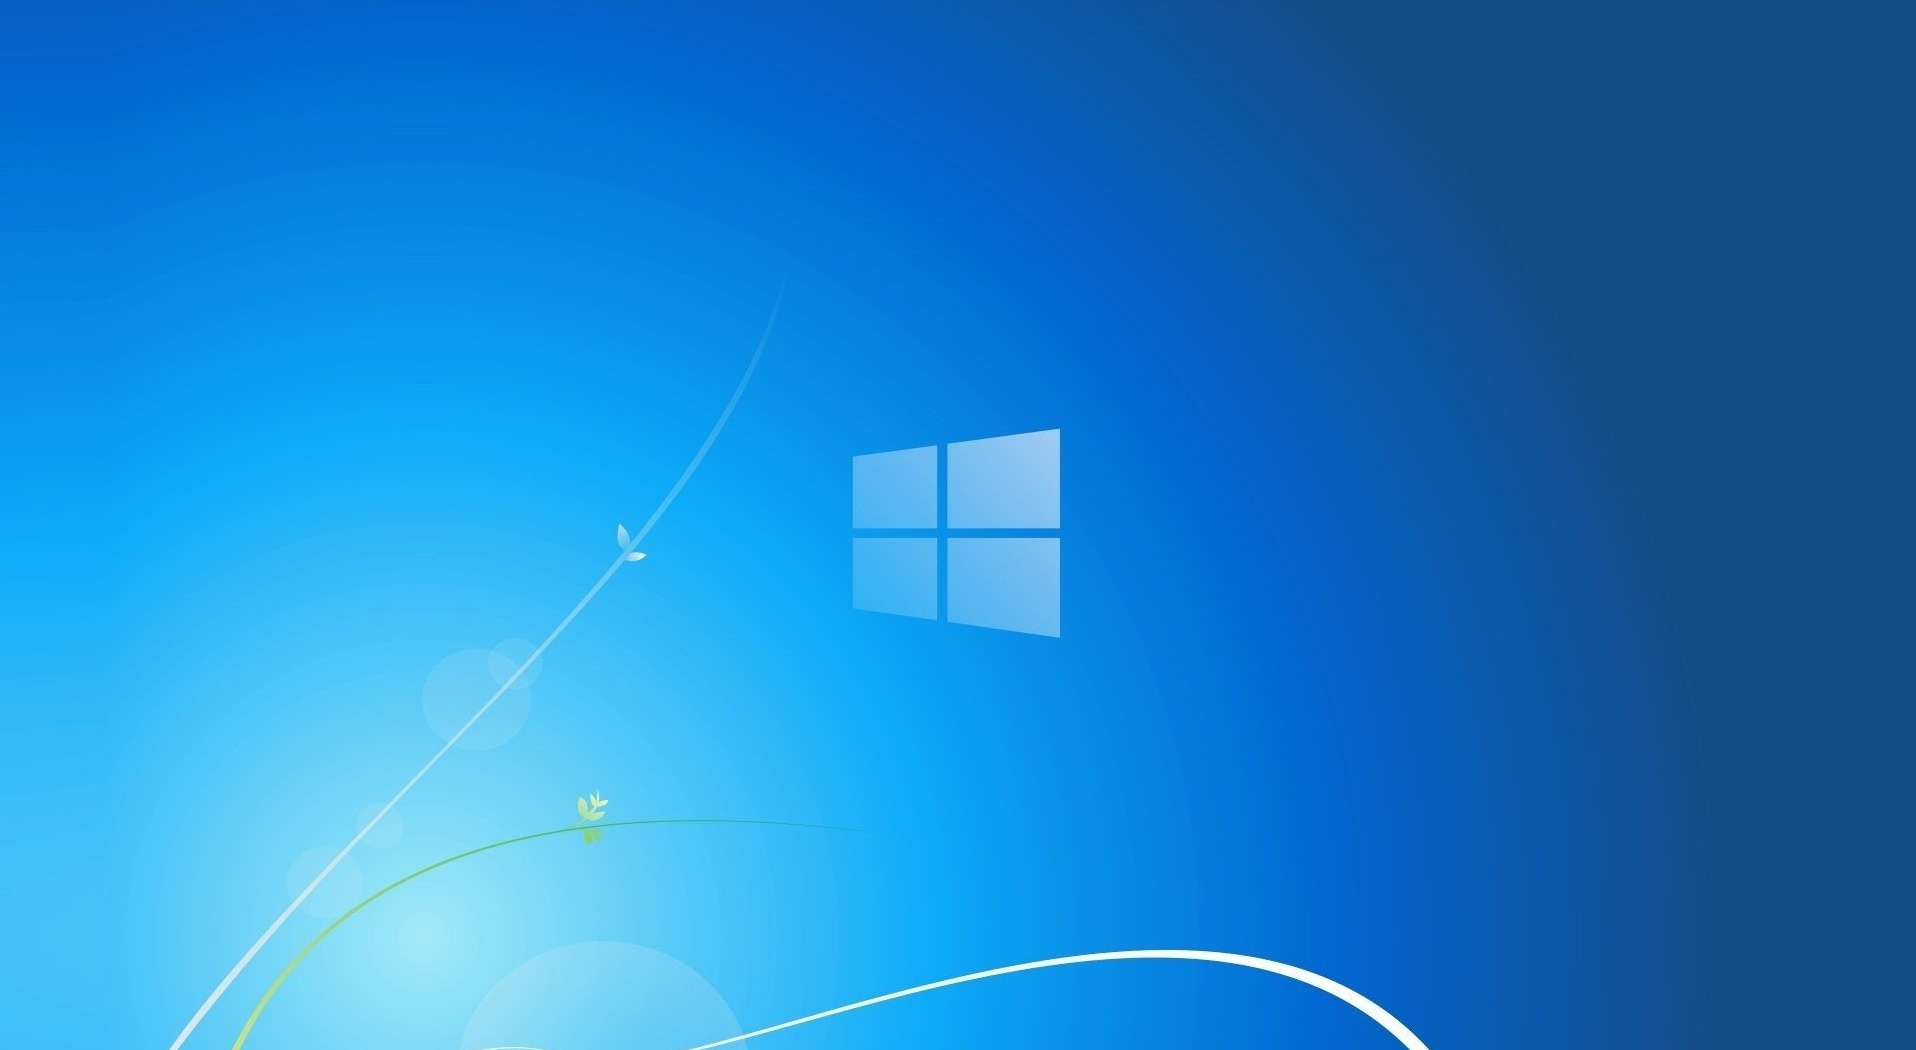 55 Windows 8 Wallpapers in HD For Free Download